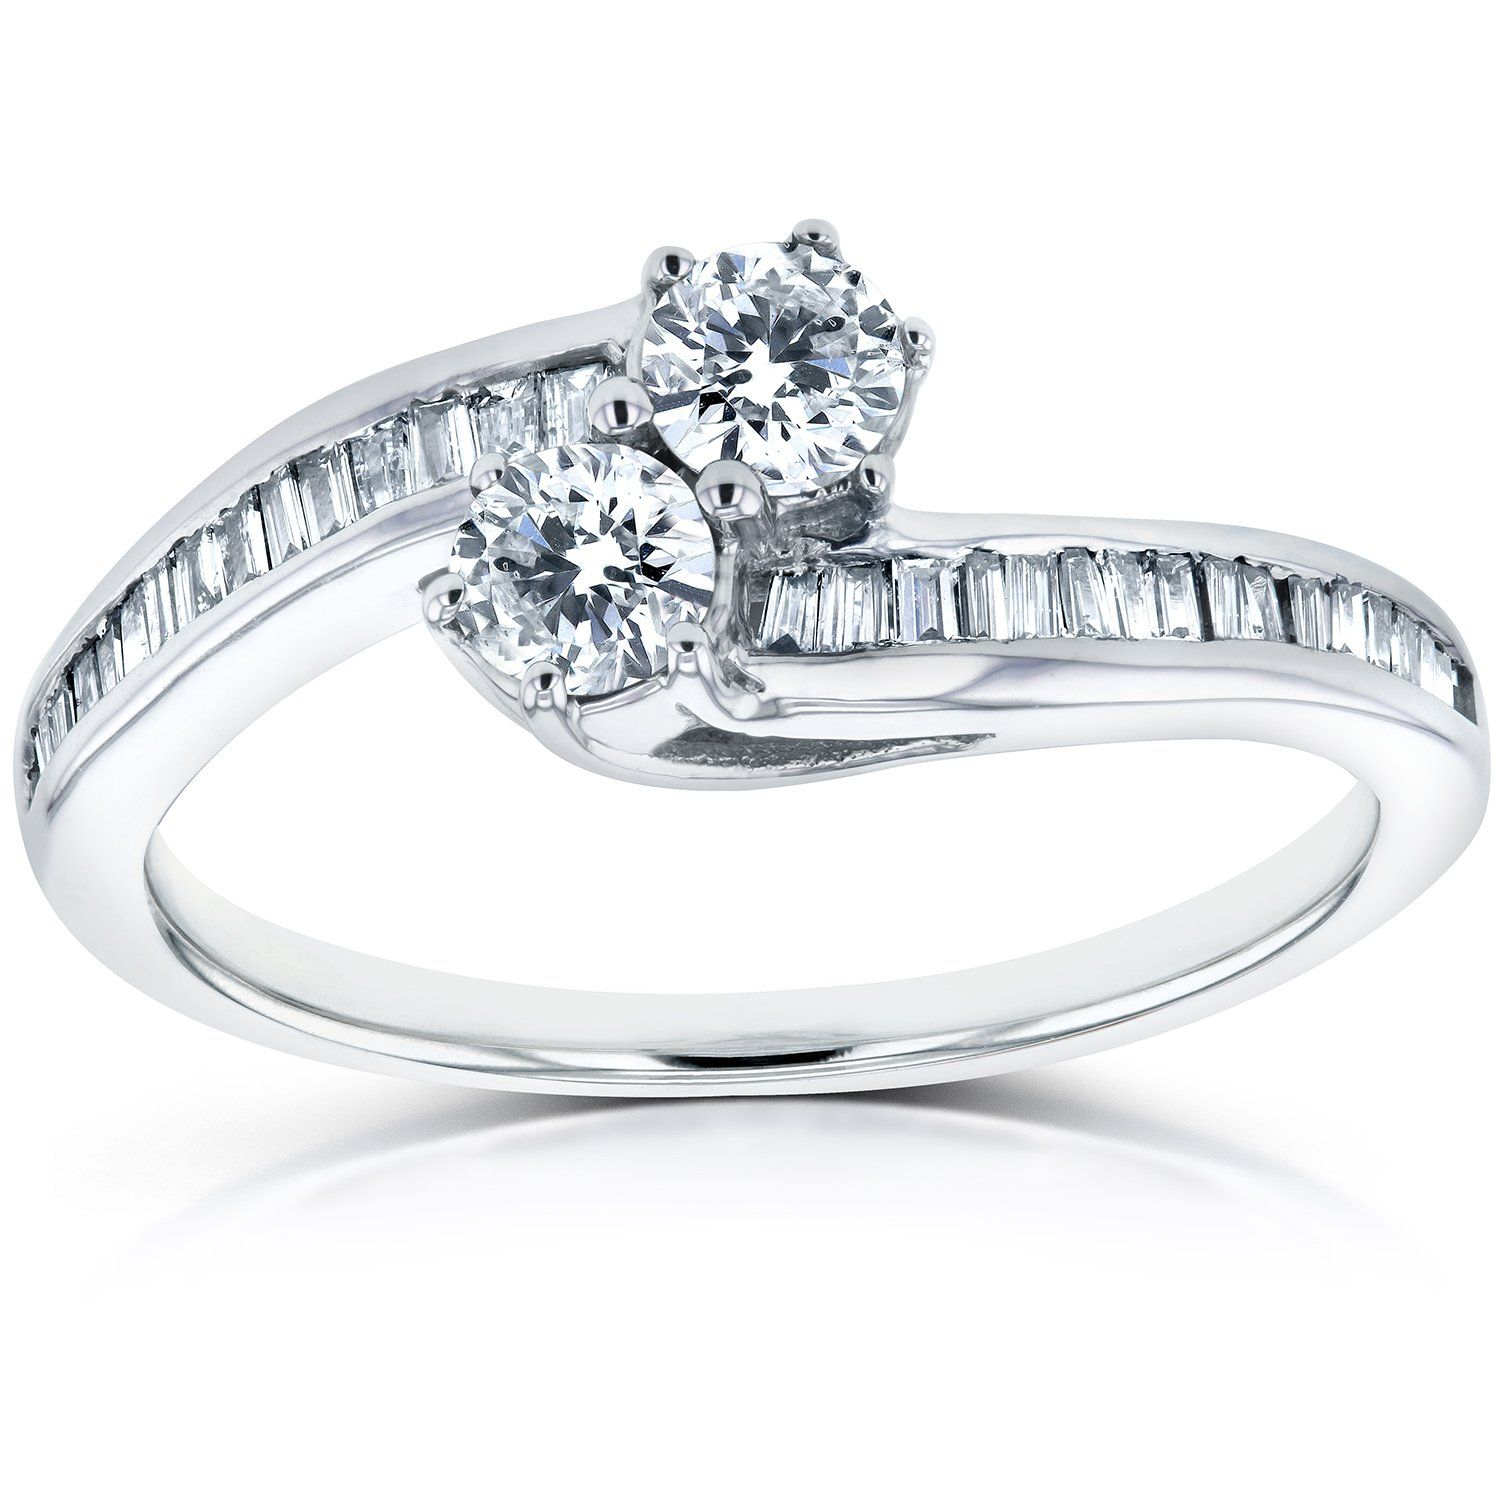 Two Stone Diamond Ring 1/2 ctw in 14k White Gold Ring,